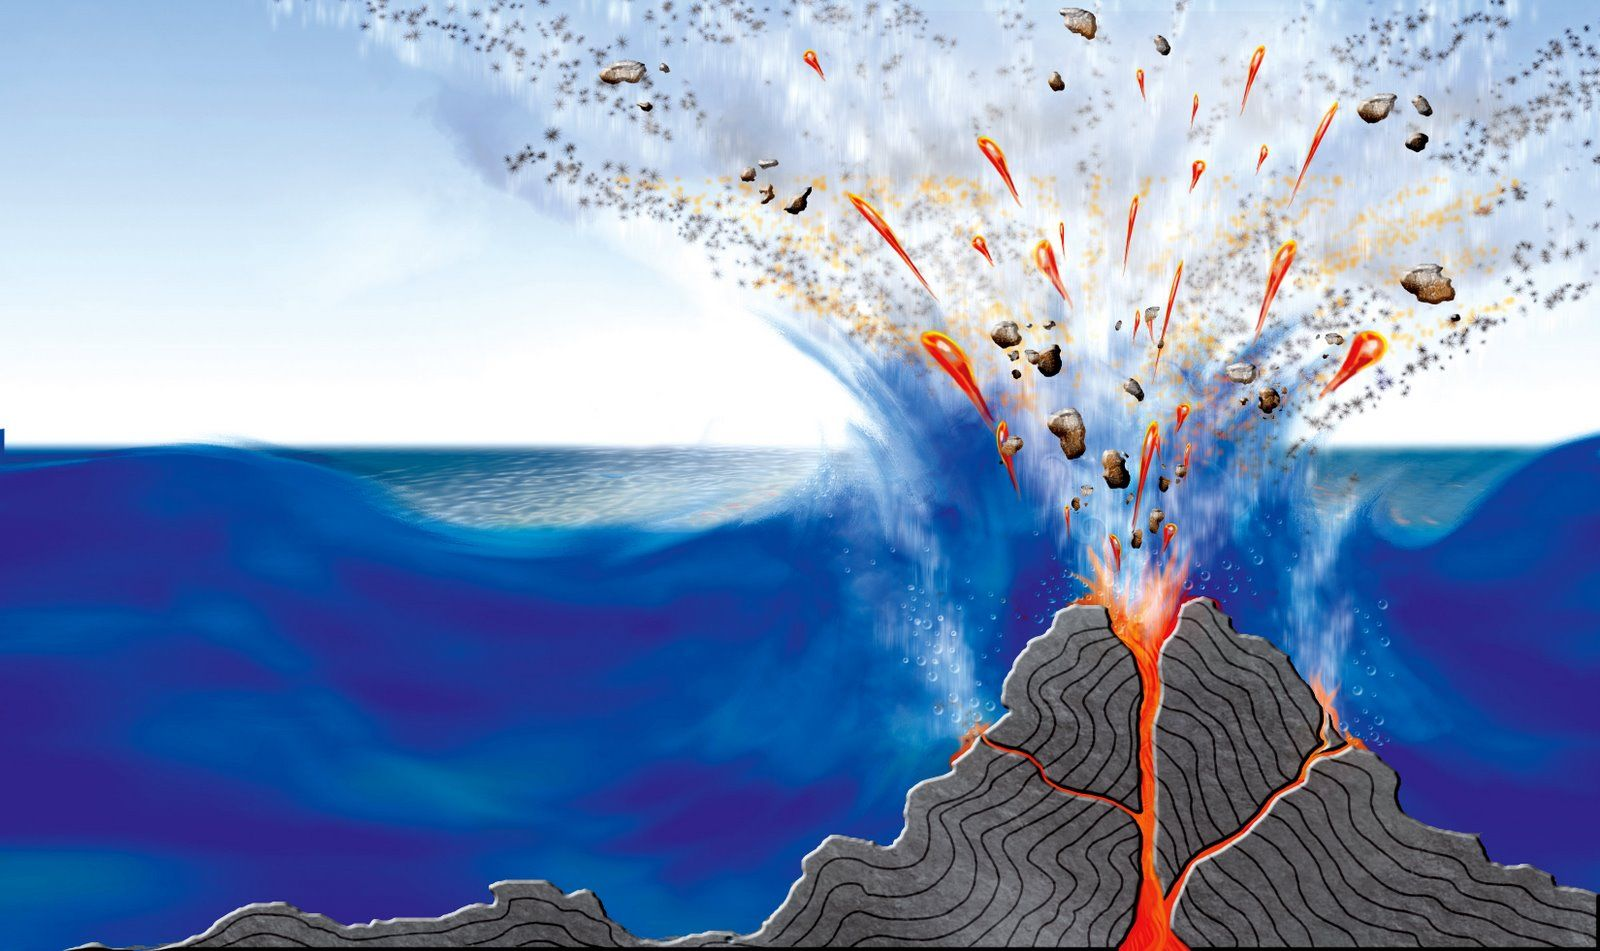 hight resolution of volcanos ocean information school science projects homeschool underwater welt volcanoes